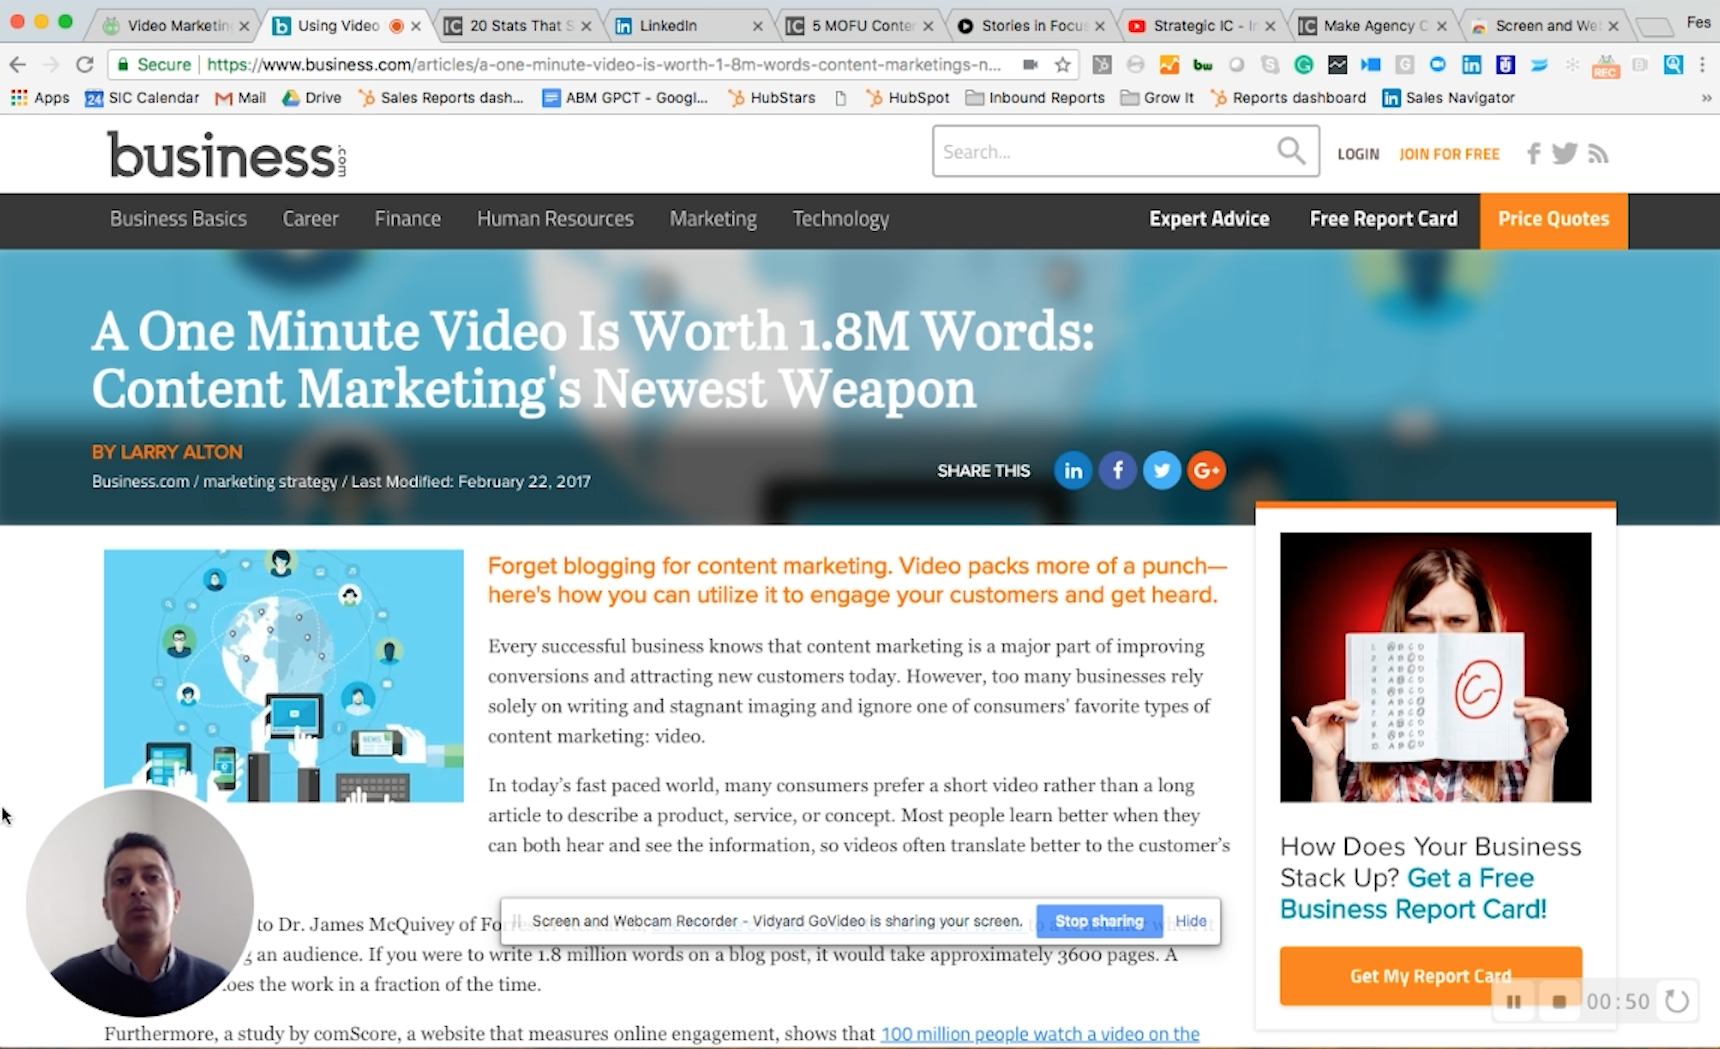 Driving Value Through Video Content Marketing